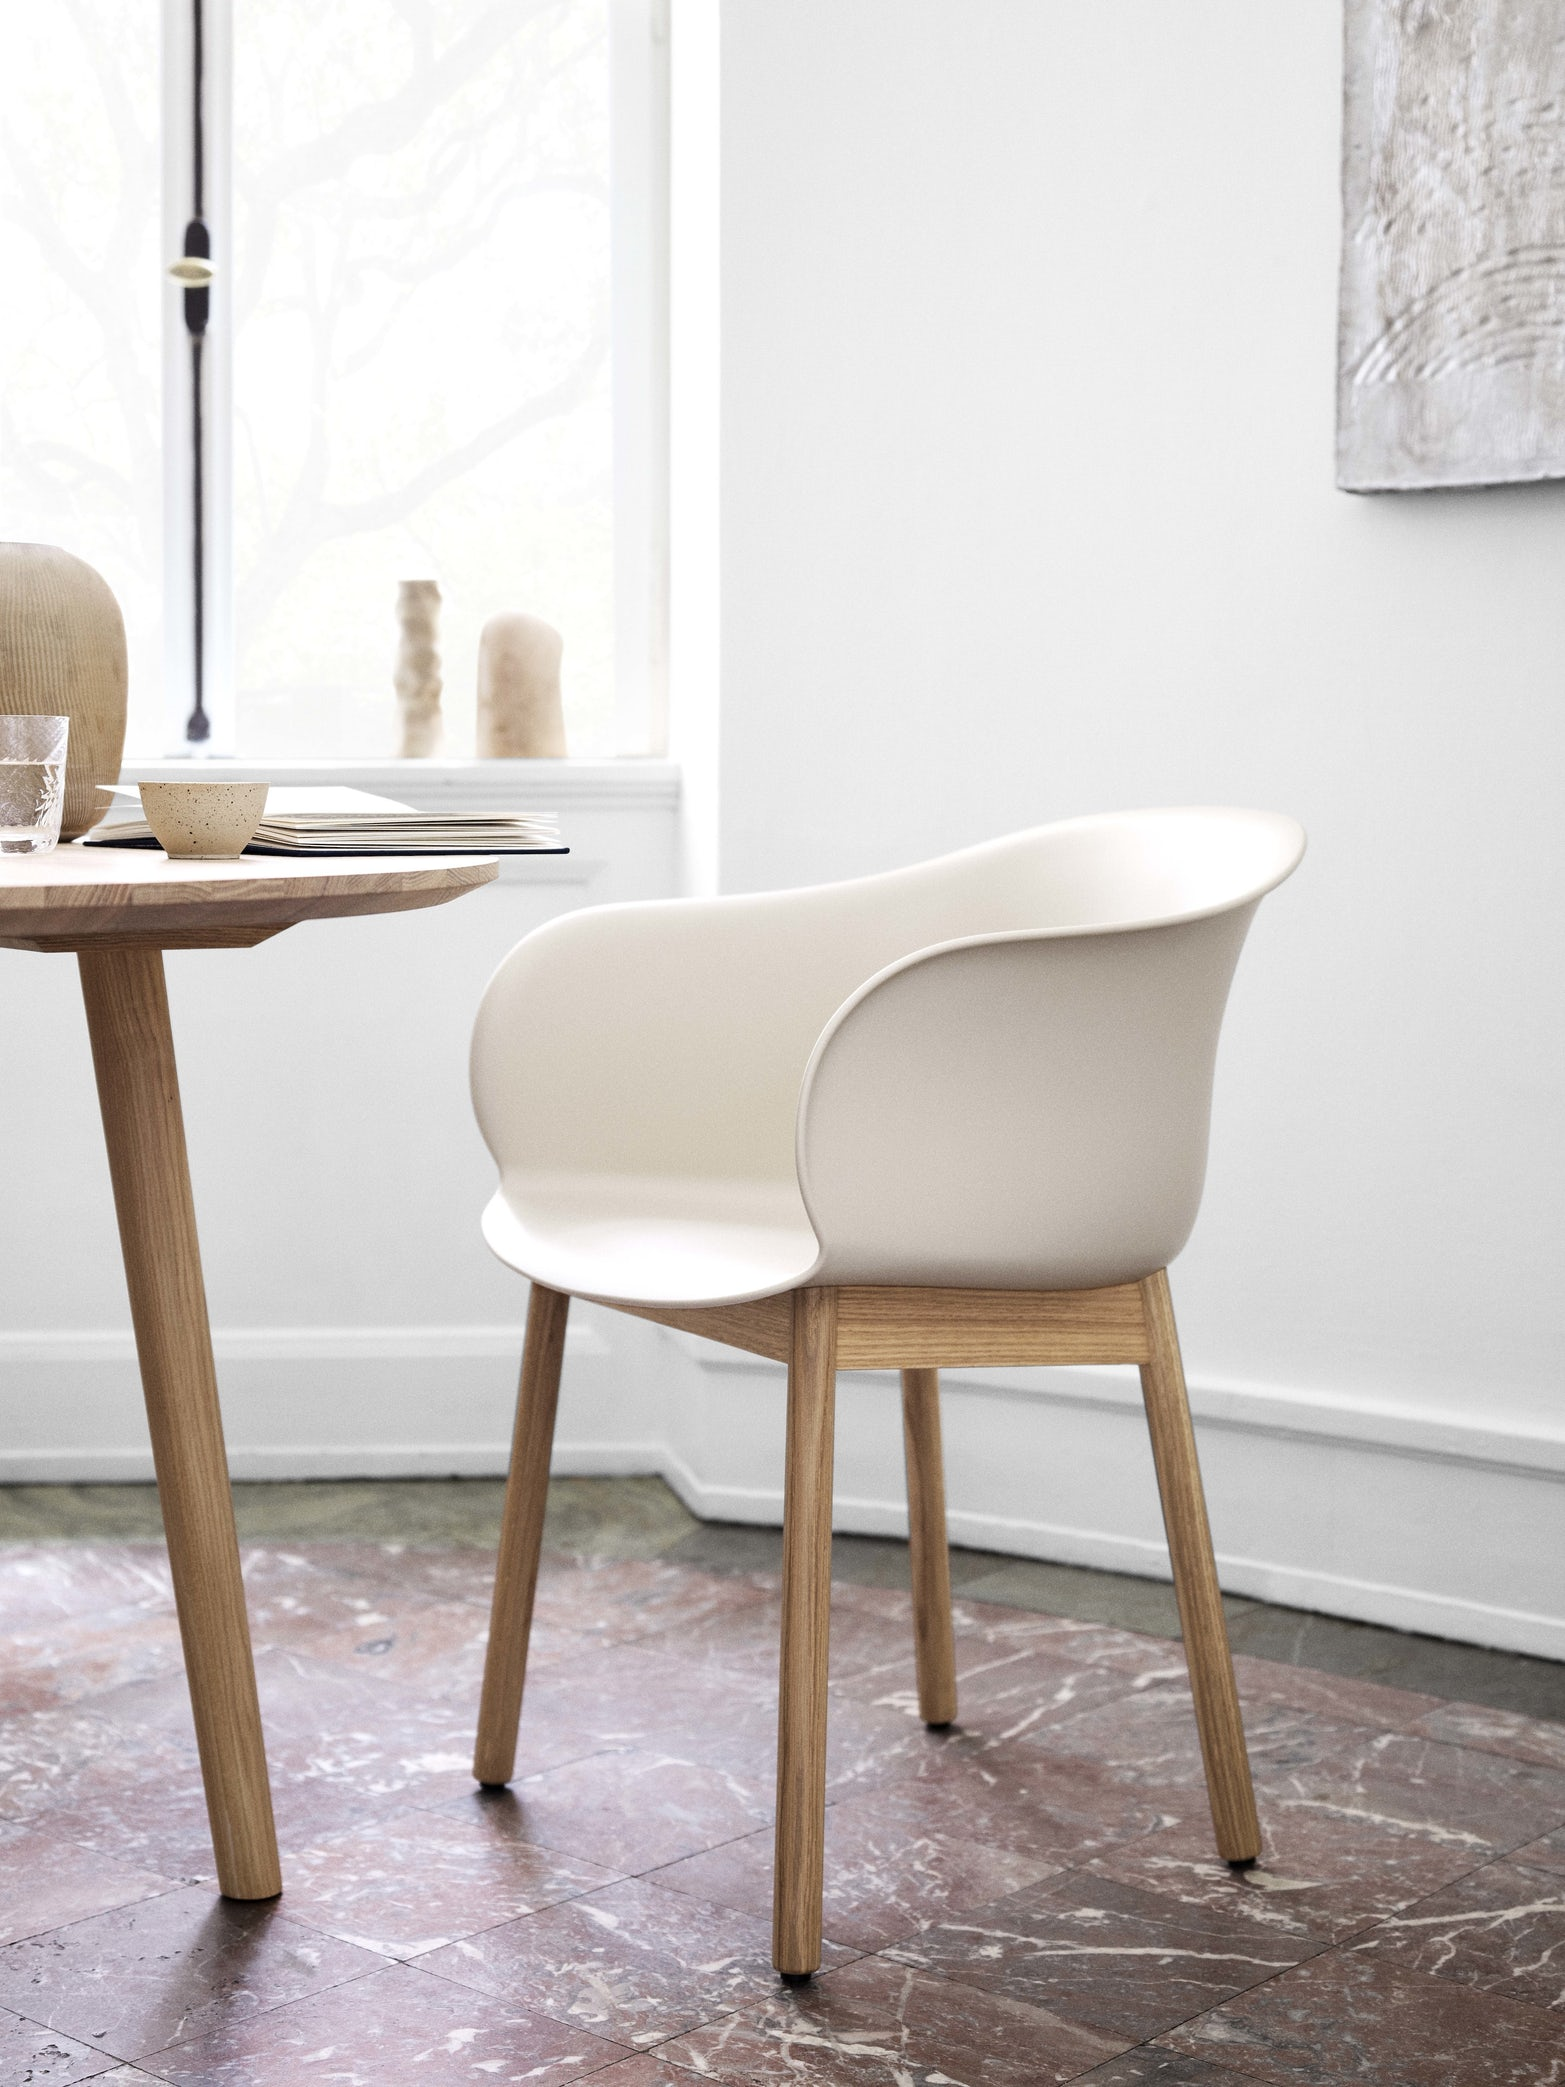 Elefy jh30 chair jaime hayon andtradition 11